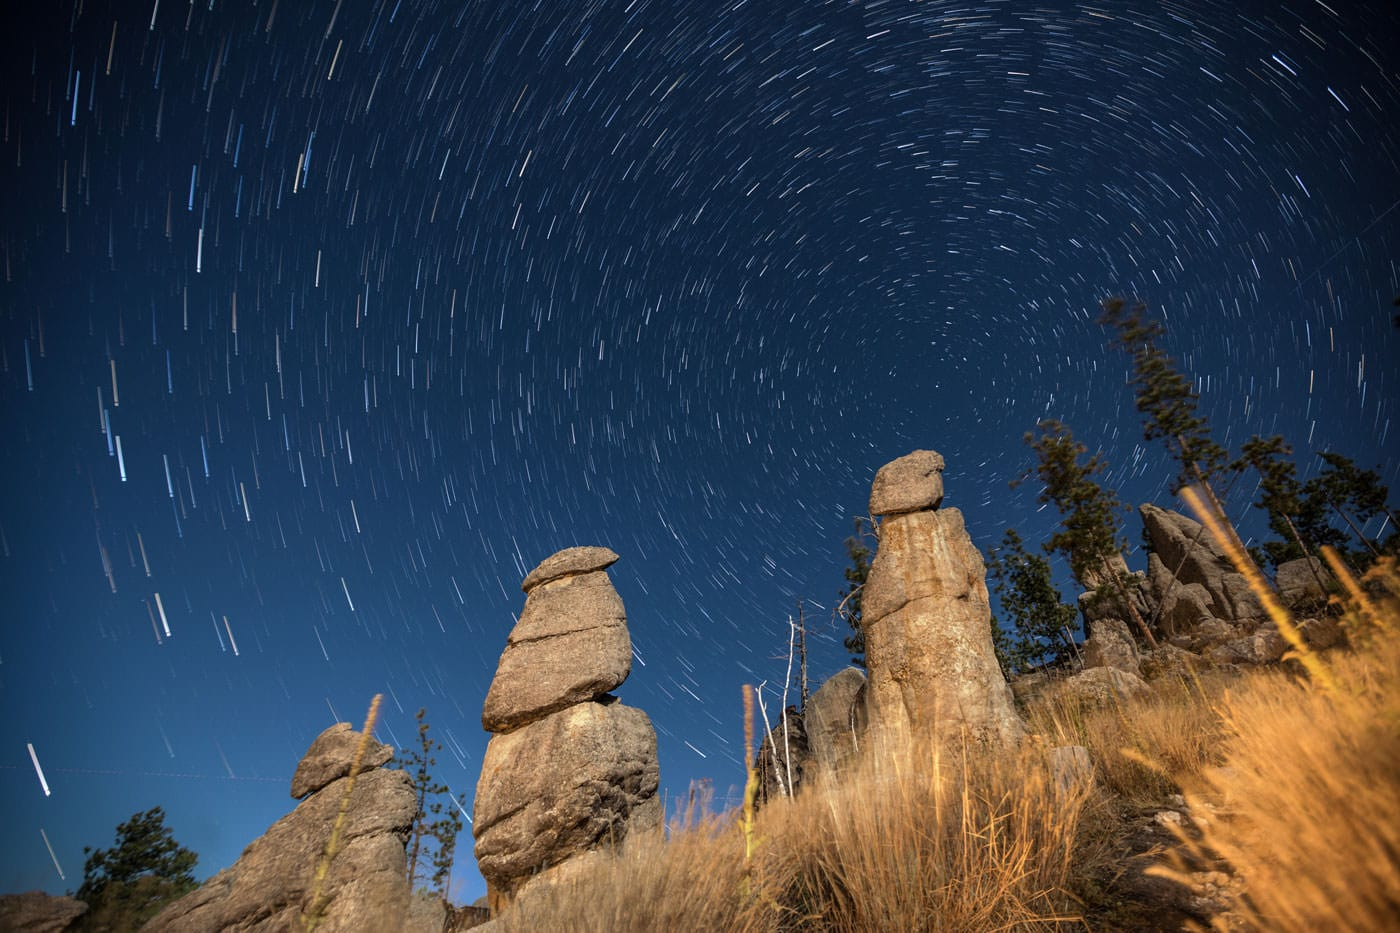 A long exposure nighttime shot of stars.